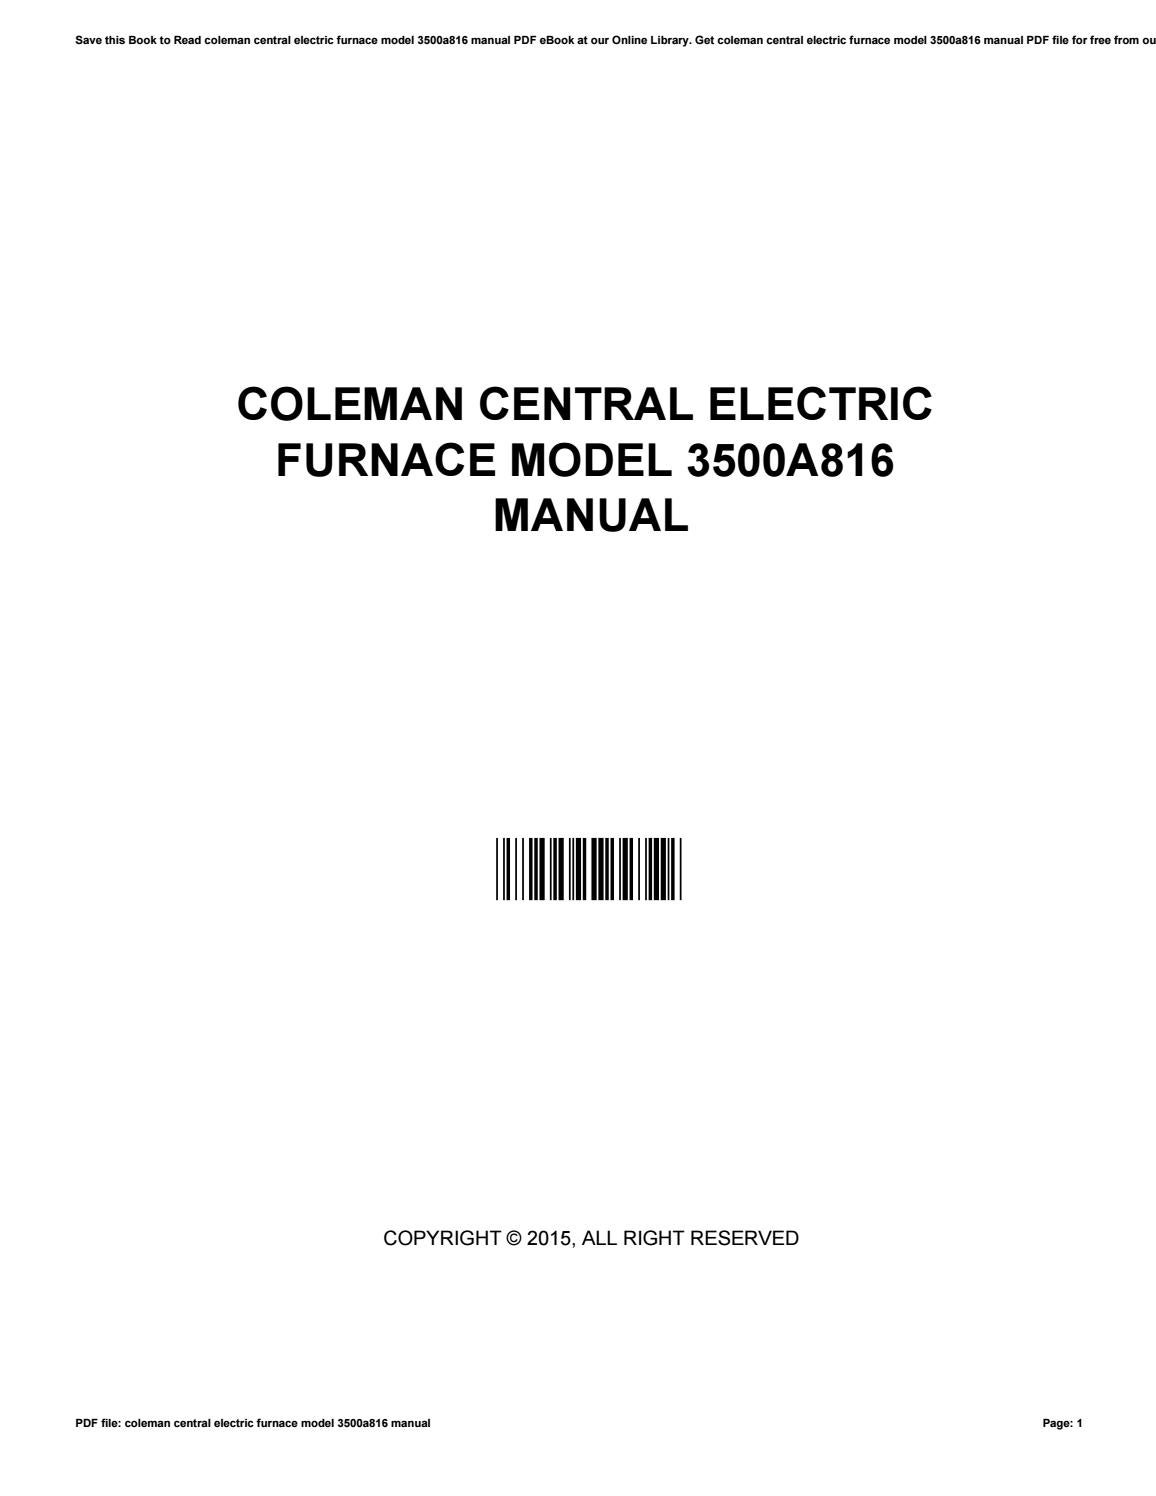 coleman central electric furnace model 3500a816 manual